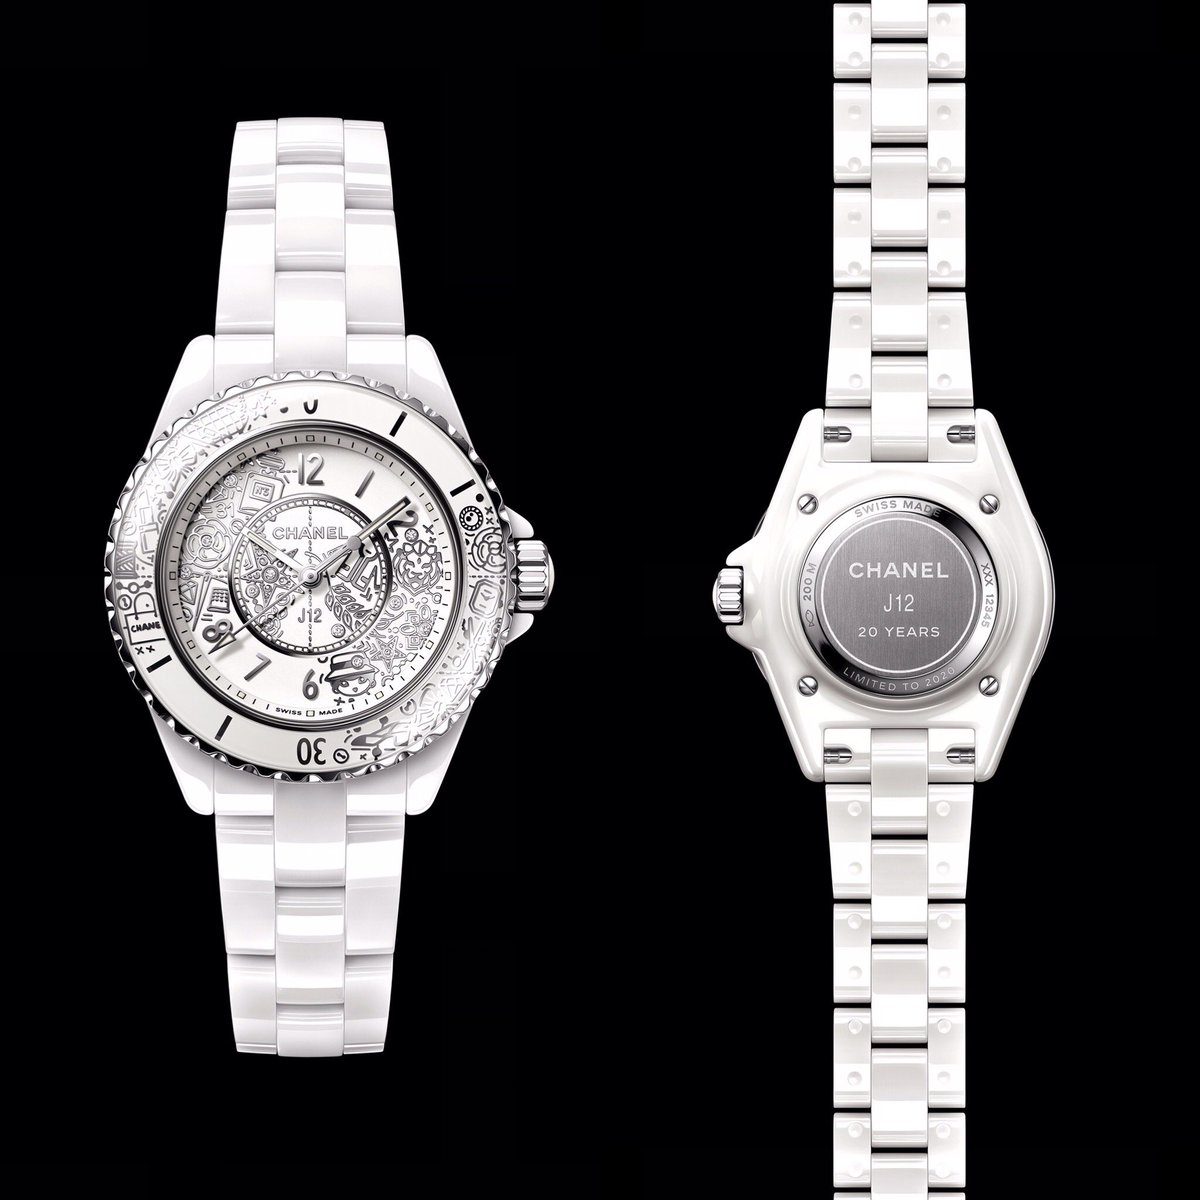 La J12 fête ses 20 ans avec une création anniversaire exclusive, un modèle en céramique blanche, serti de 12 diamants, tatoué de 20 symboles  de #CHANEL. #J12Turns20 #CHANELWatches 👉 https://t.co/D1Kctf3DPO L'héritage de Coco Chanel #espritdegabrielle https://t.co/8UJmV1FjCG